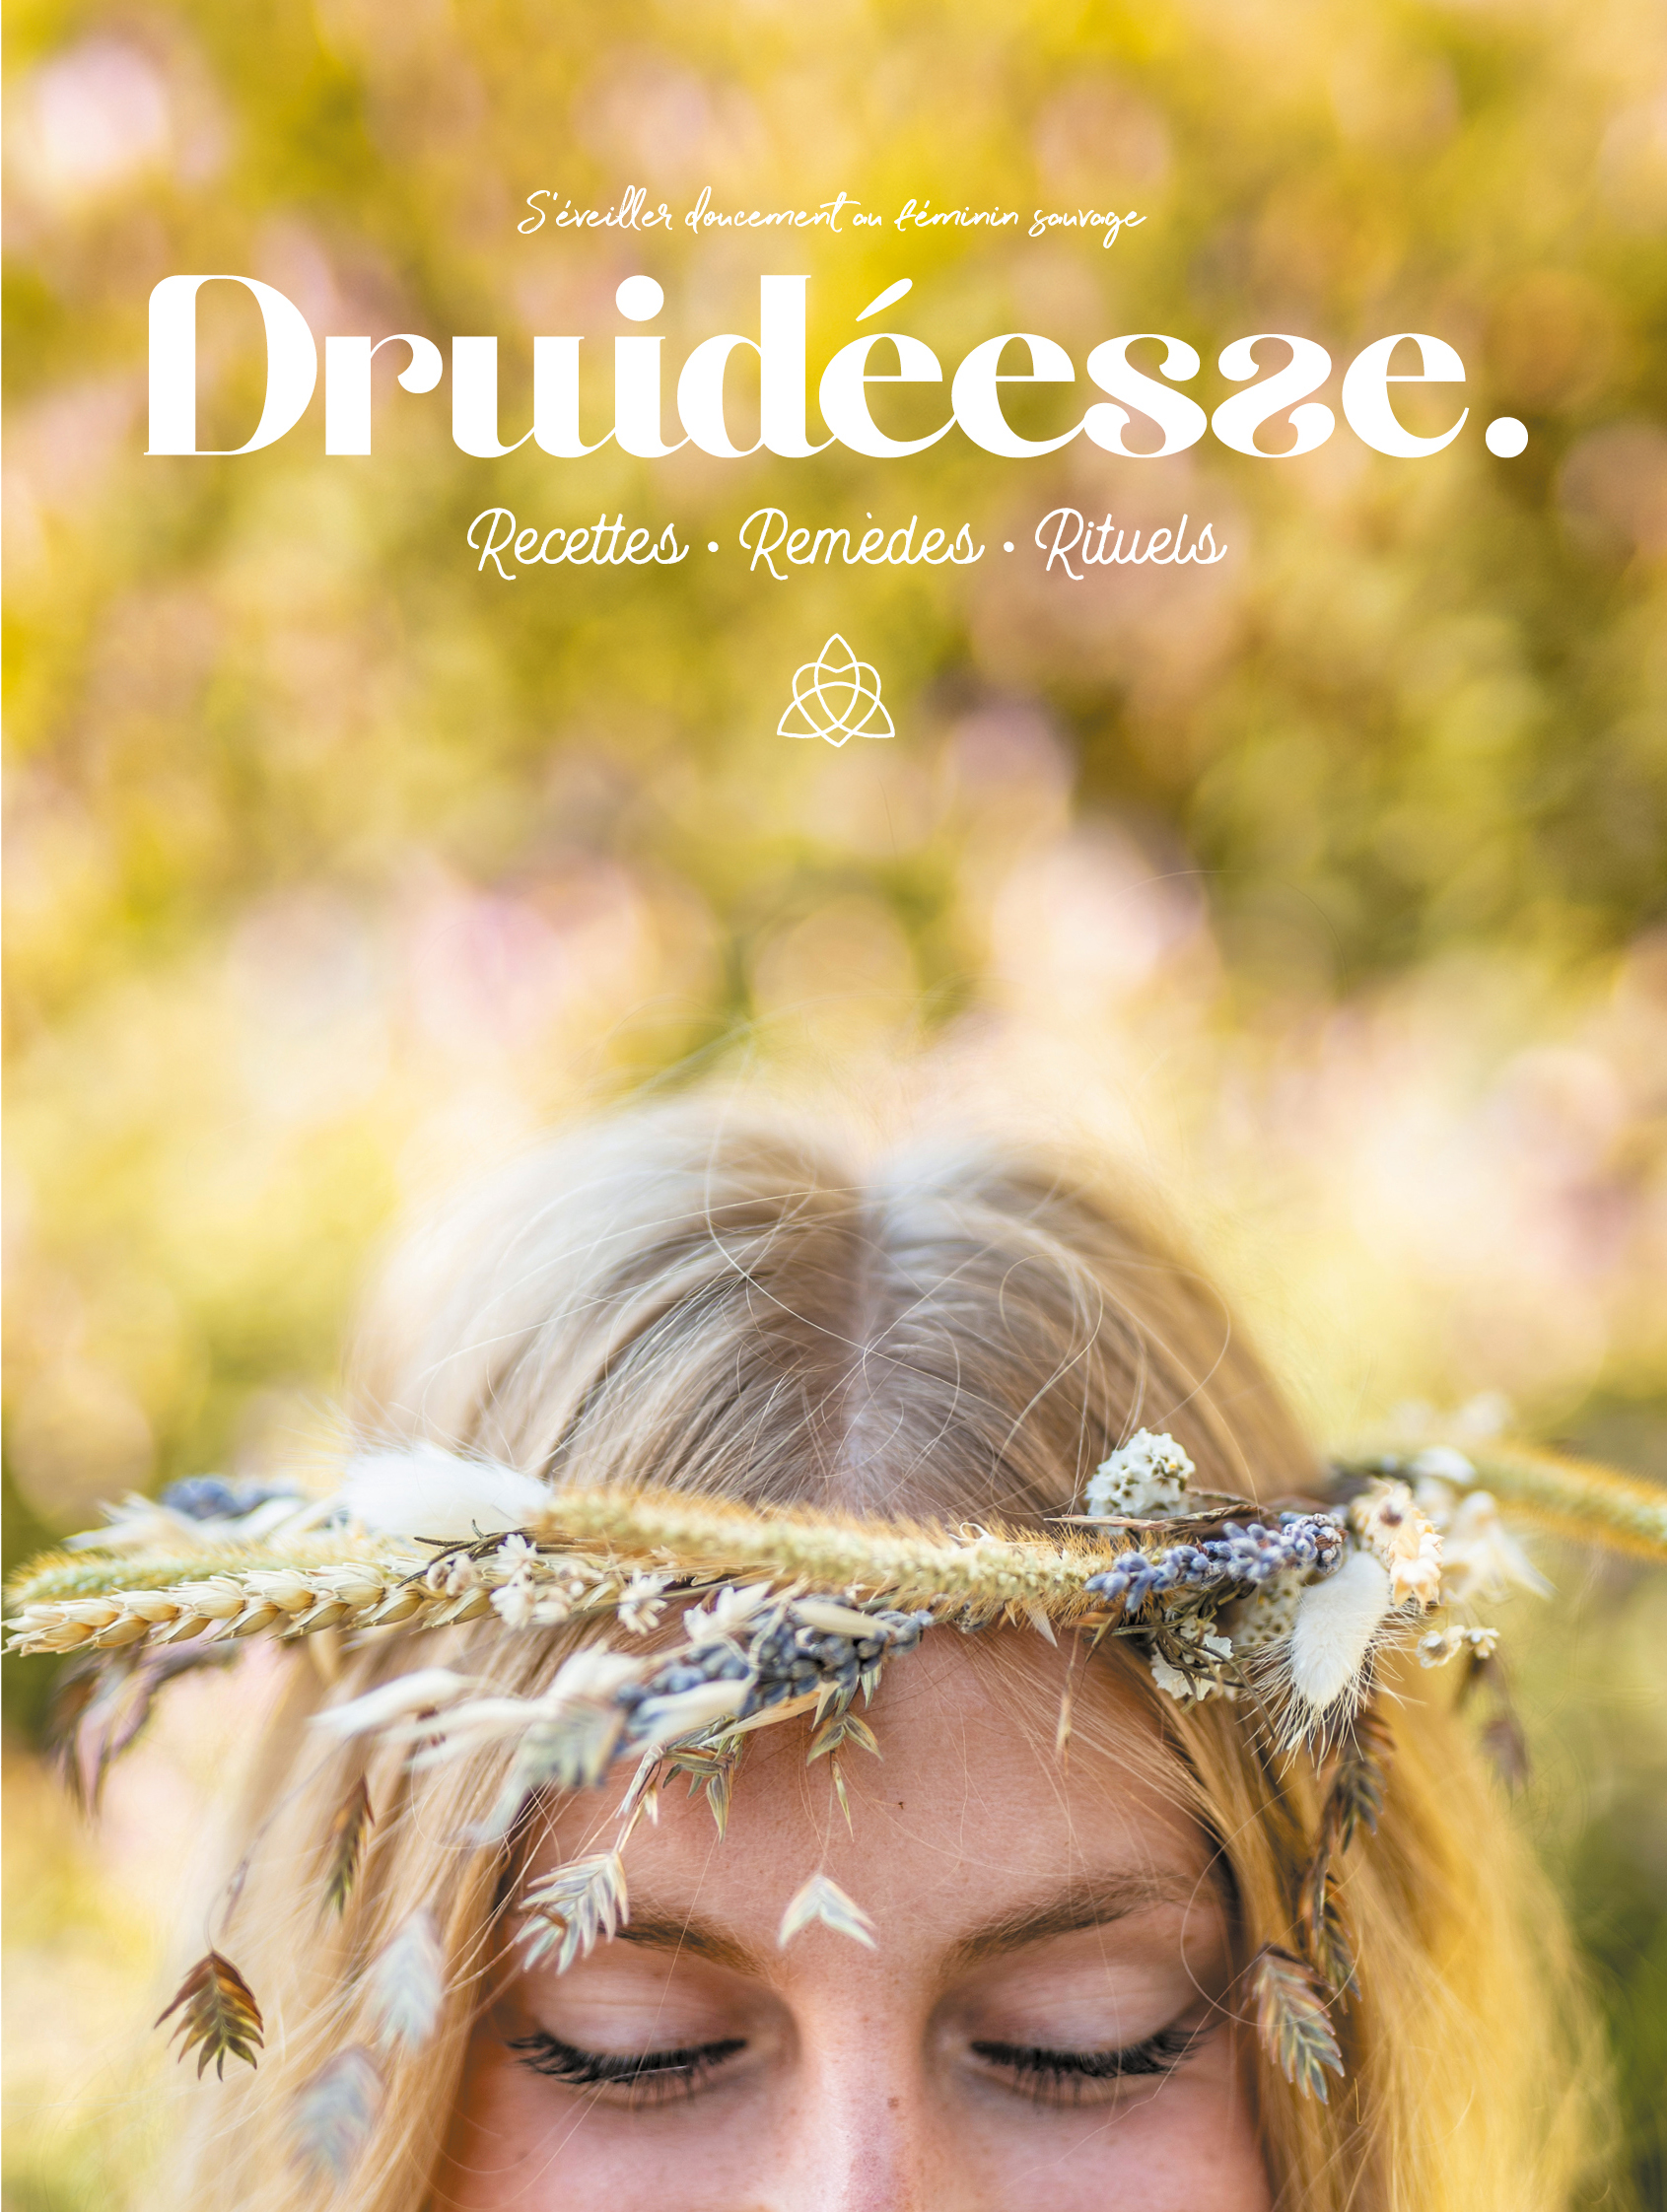 Lina Bou for Druidéesse